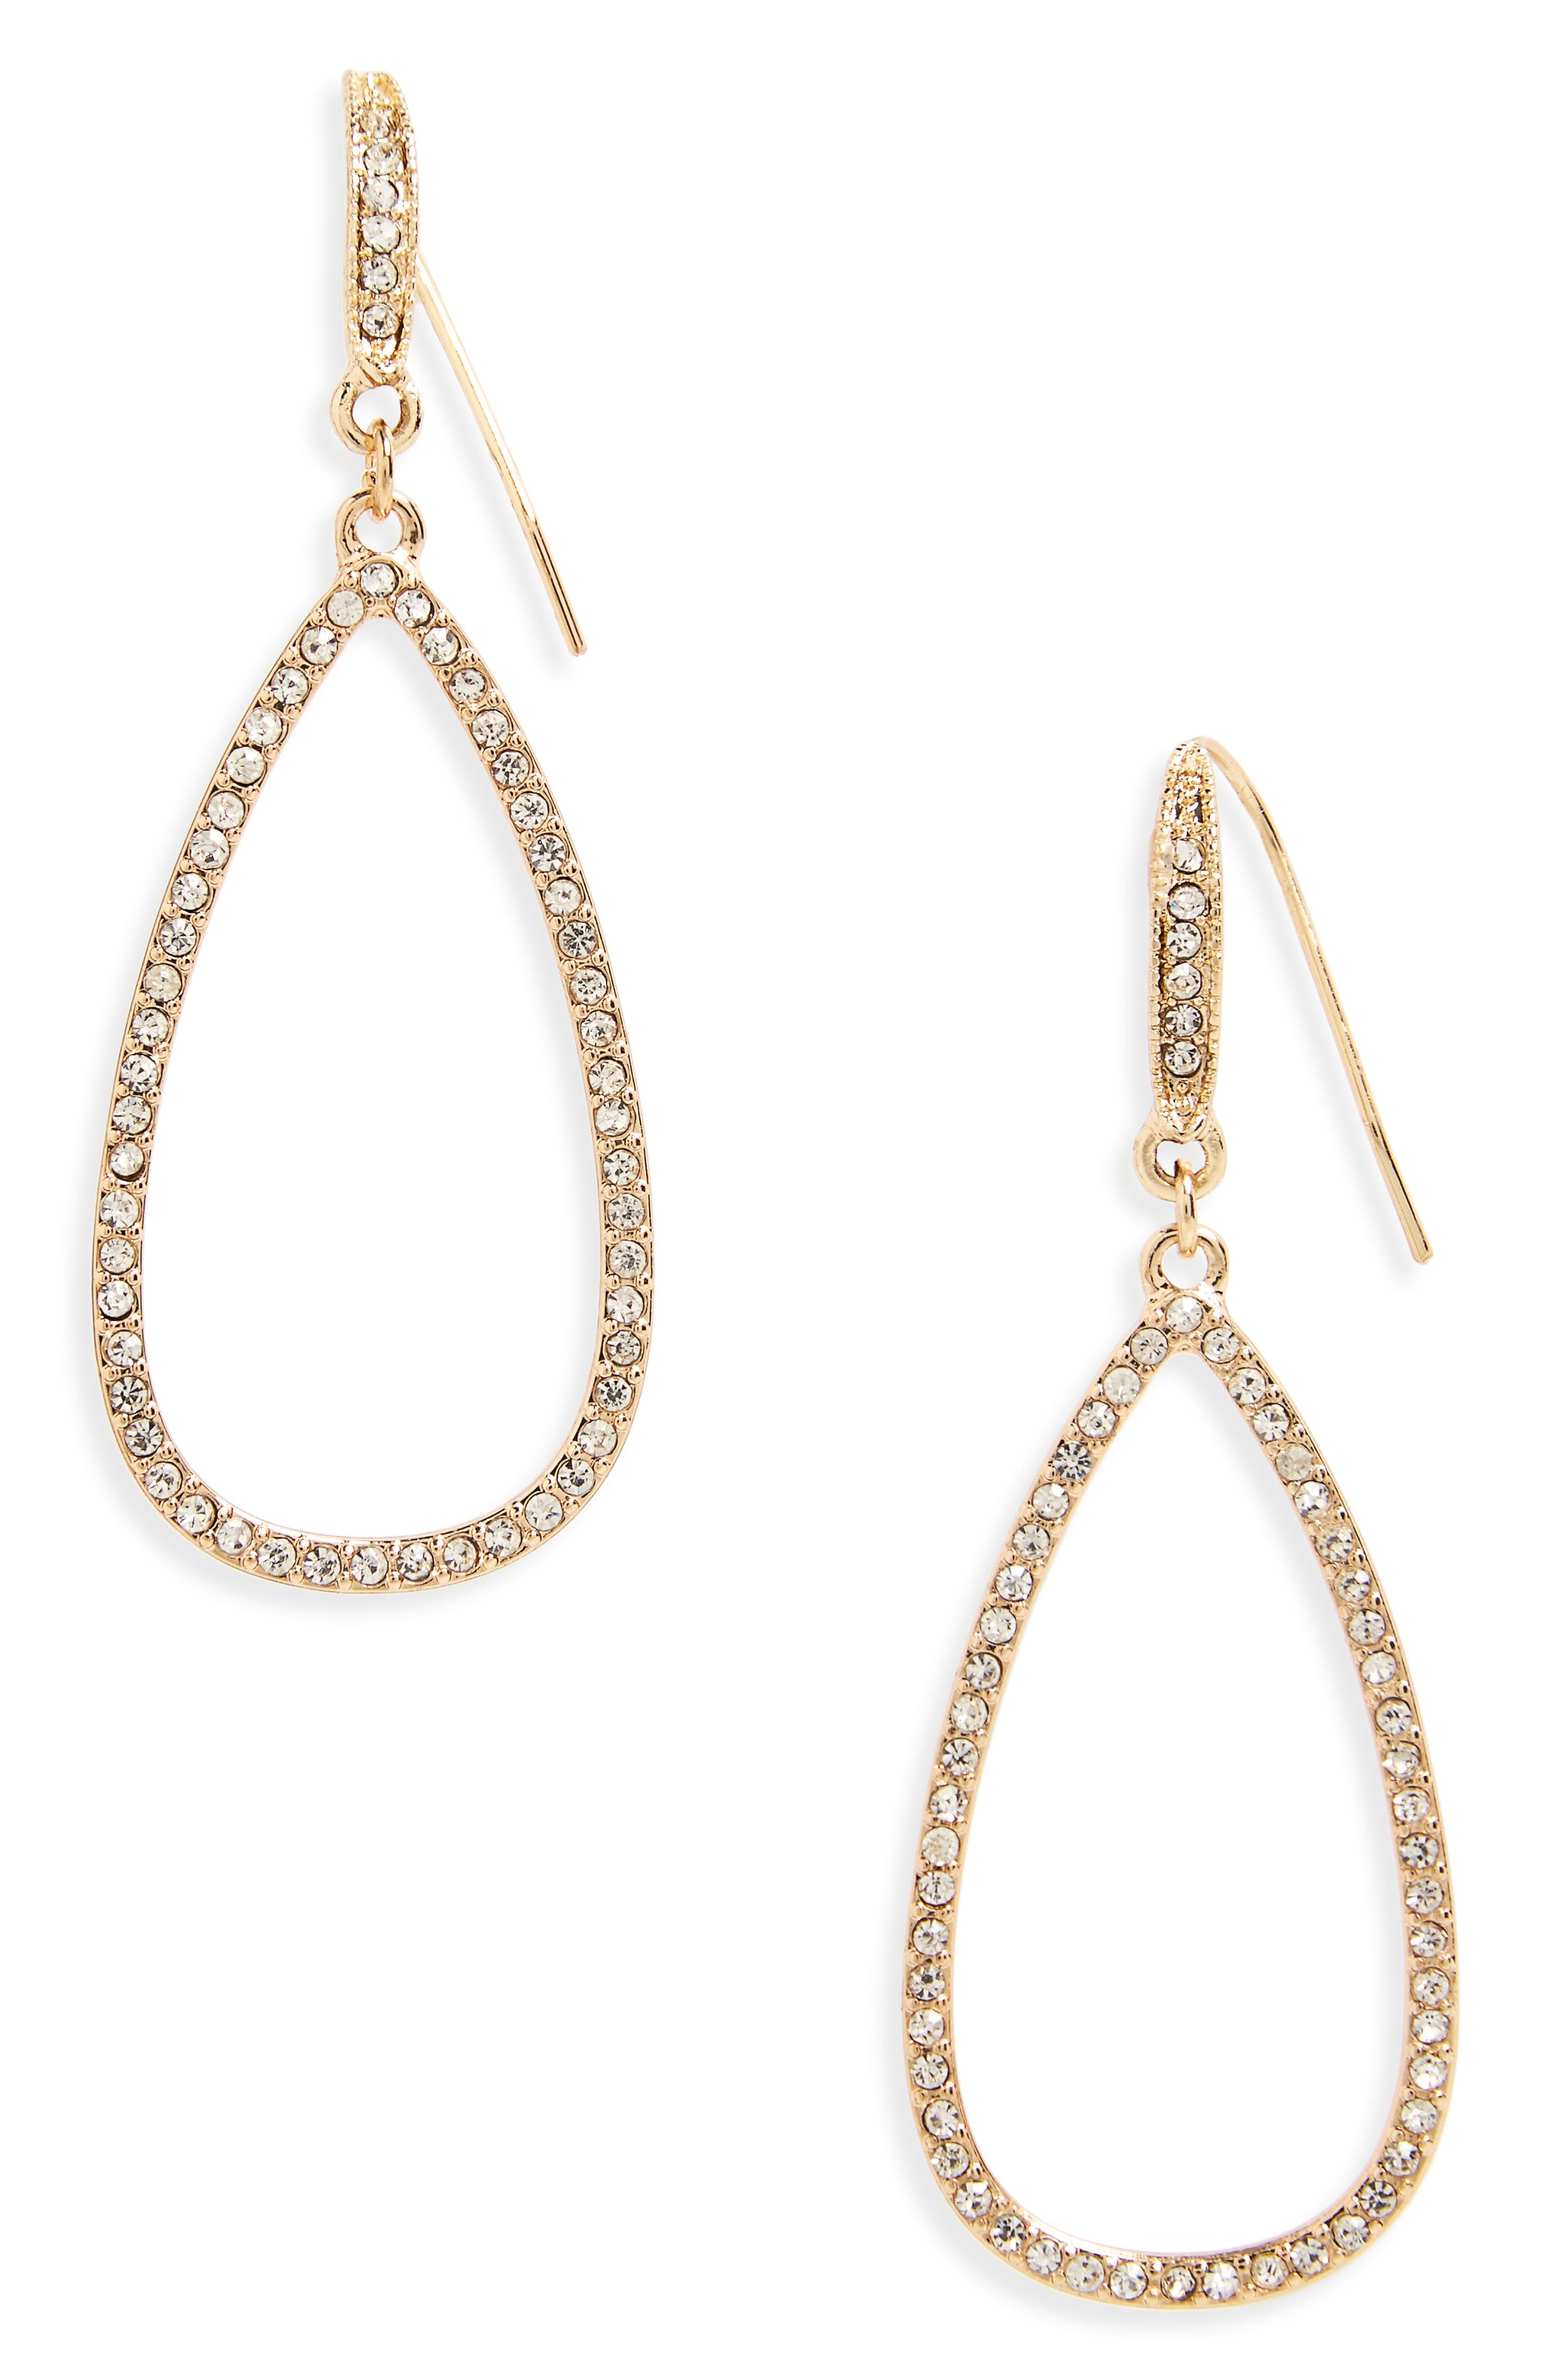 Crystal Teardrop Earrings,                             Main thumbnail 1, color,                             710